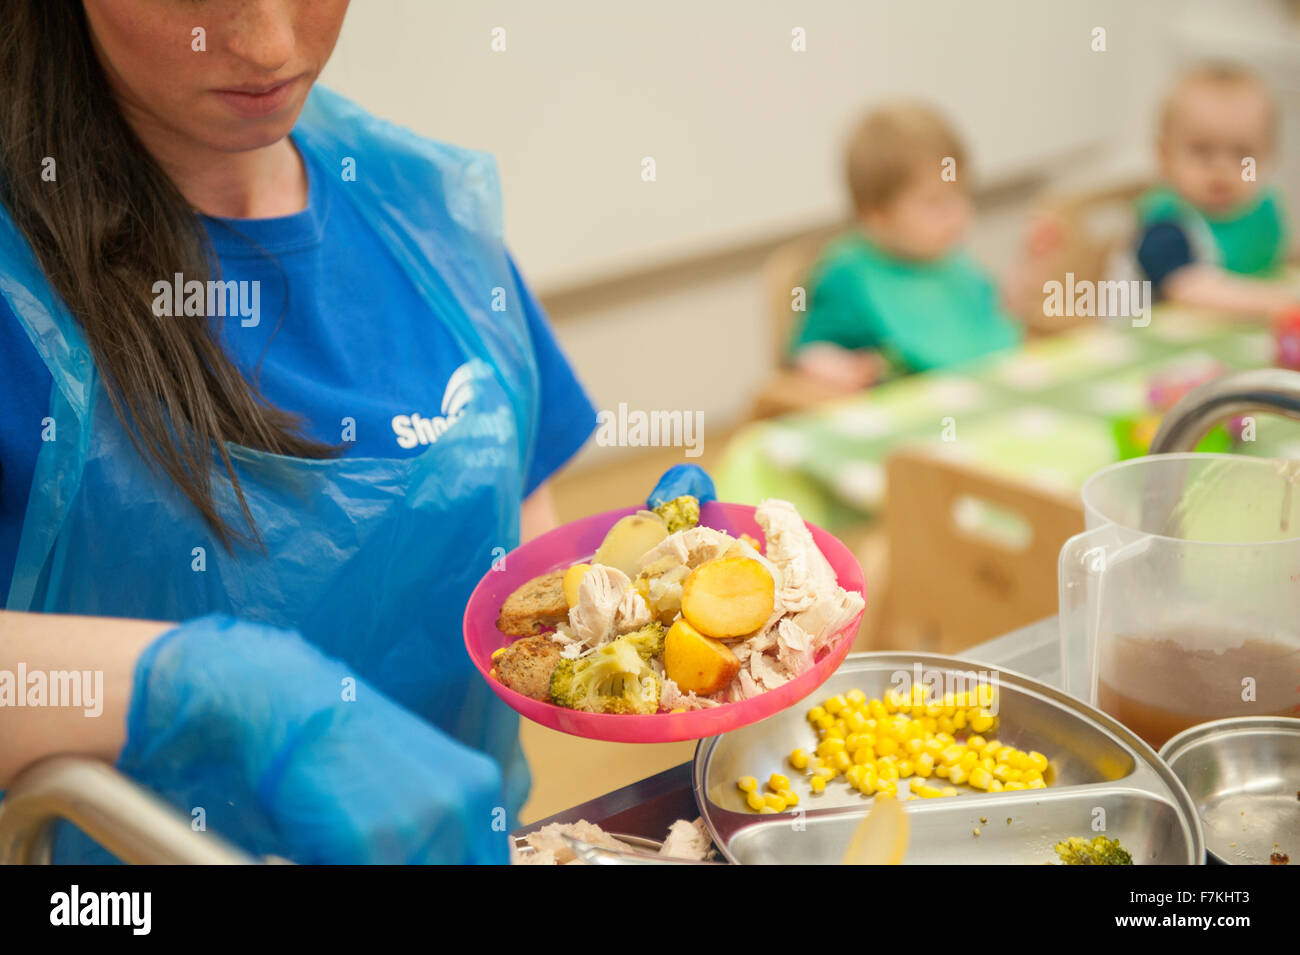 A nursery worker preparing a meal for children - Stock Image